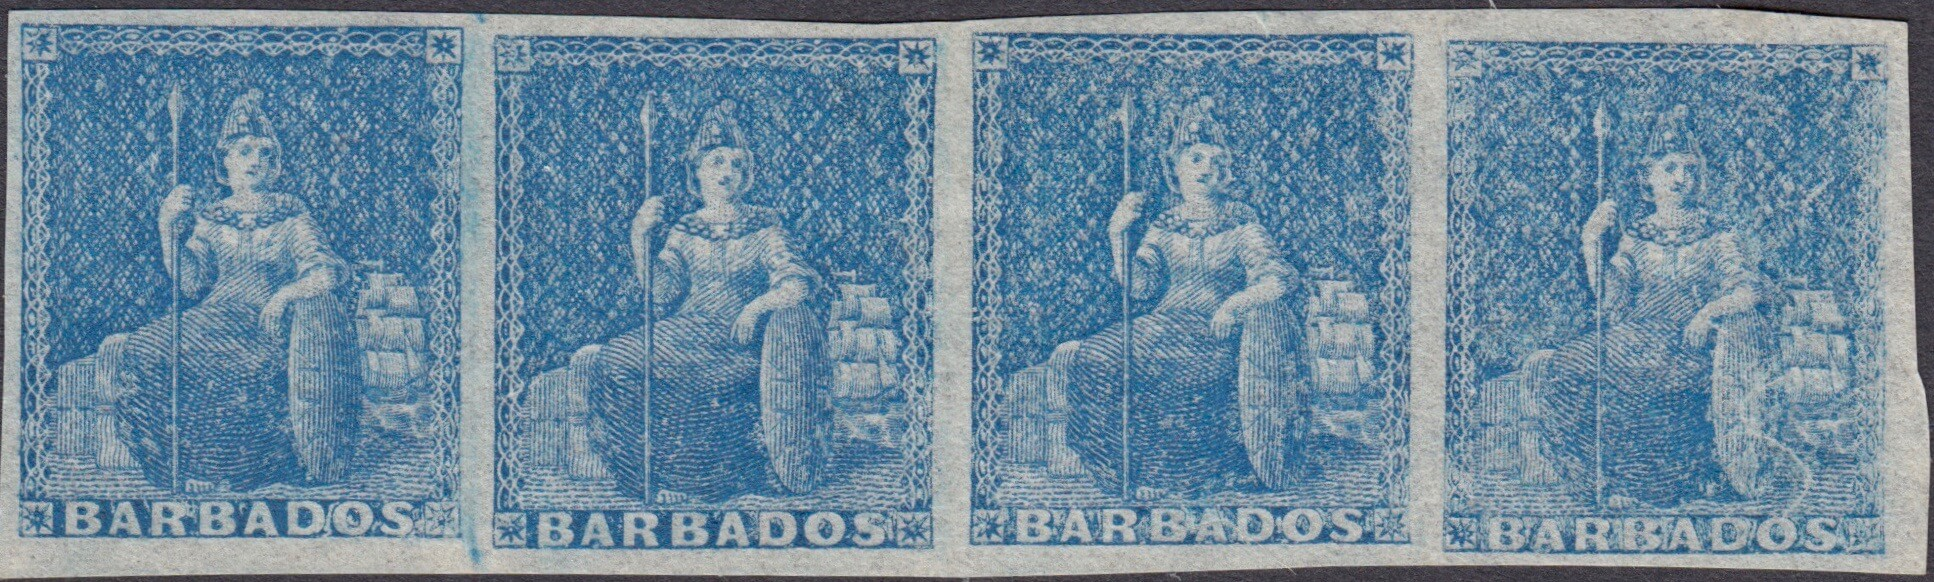 Barbados SG3 Britannia strip of four mint stamps